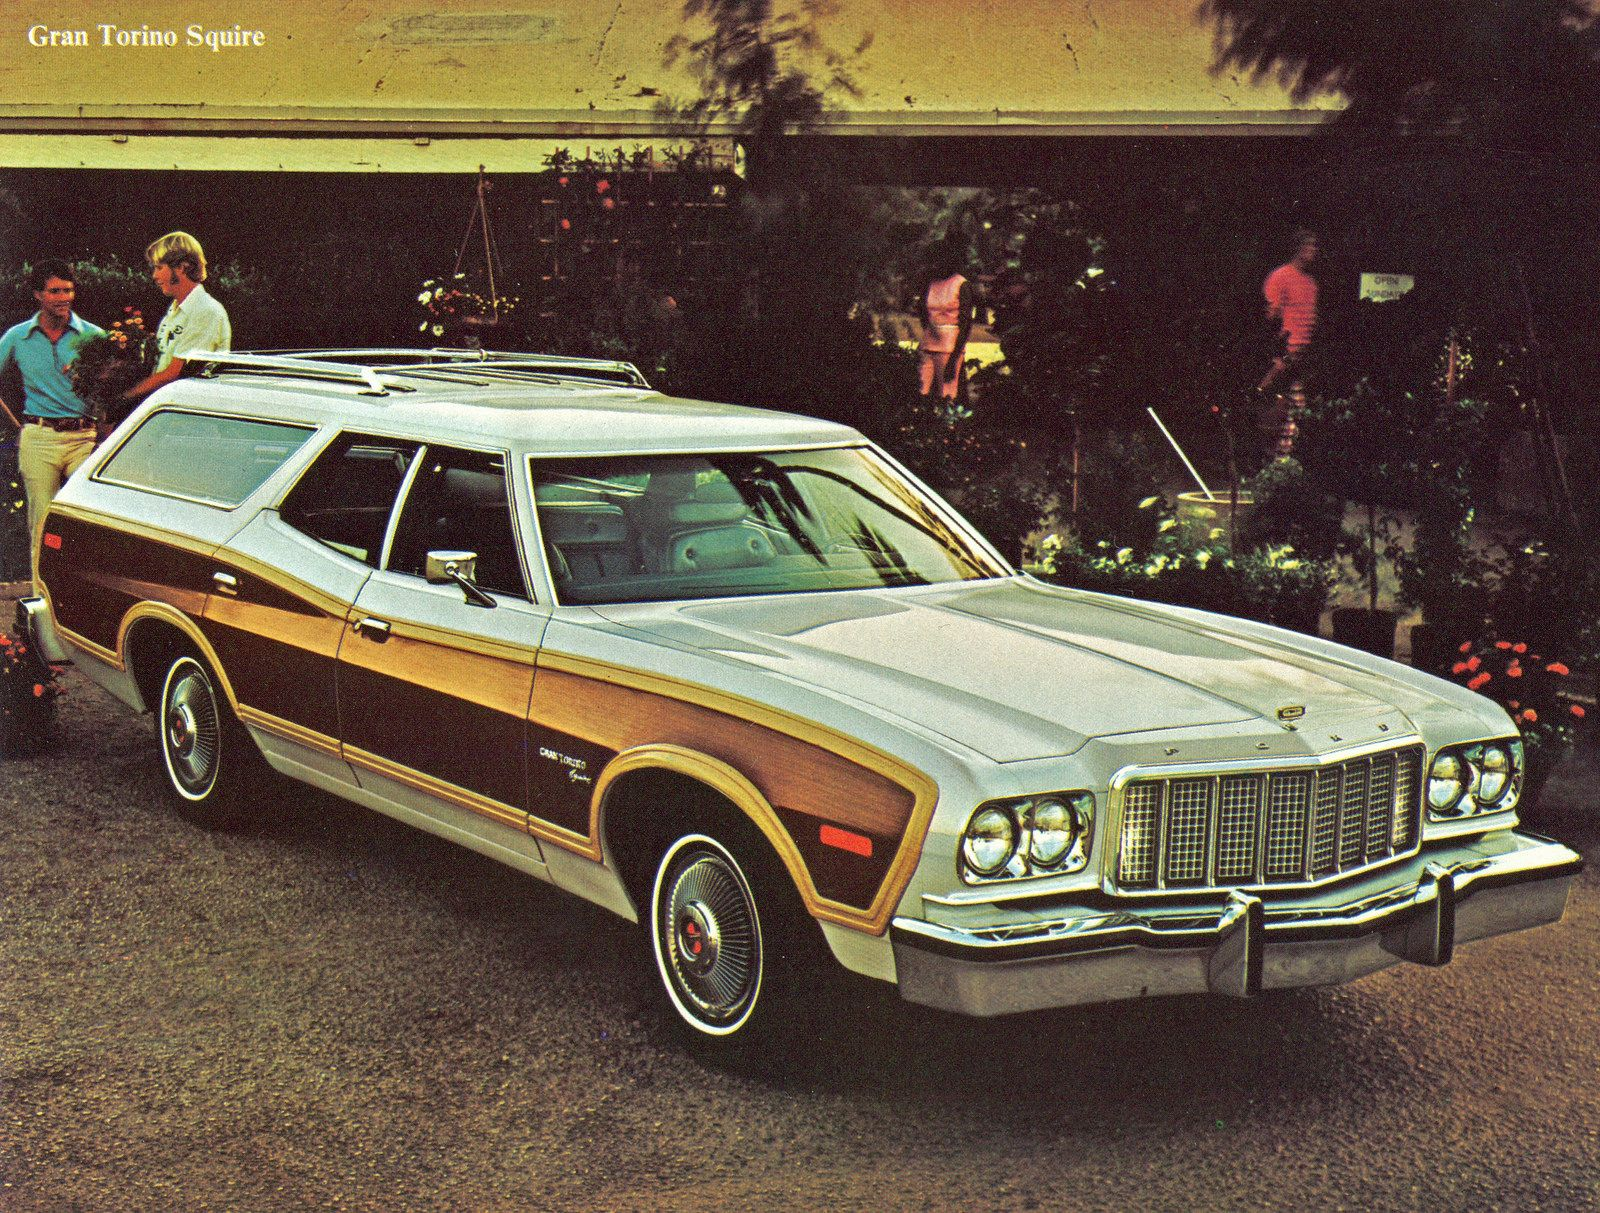 All Sizes 1976 Ford Gran Torino Squire Station Wagon Flickr